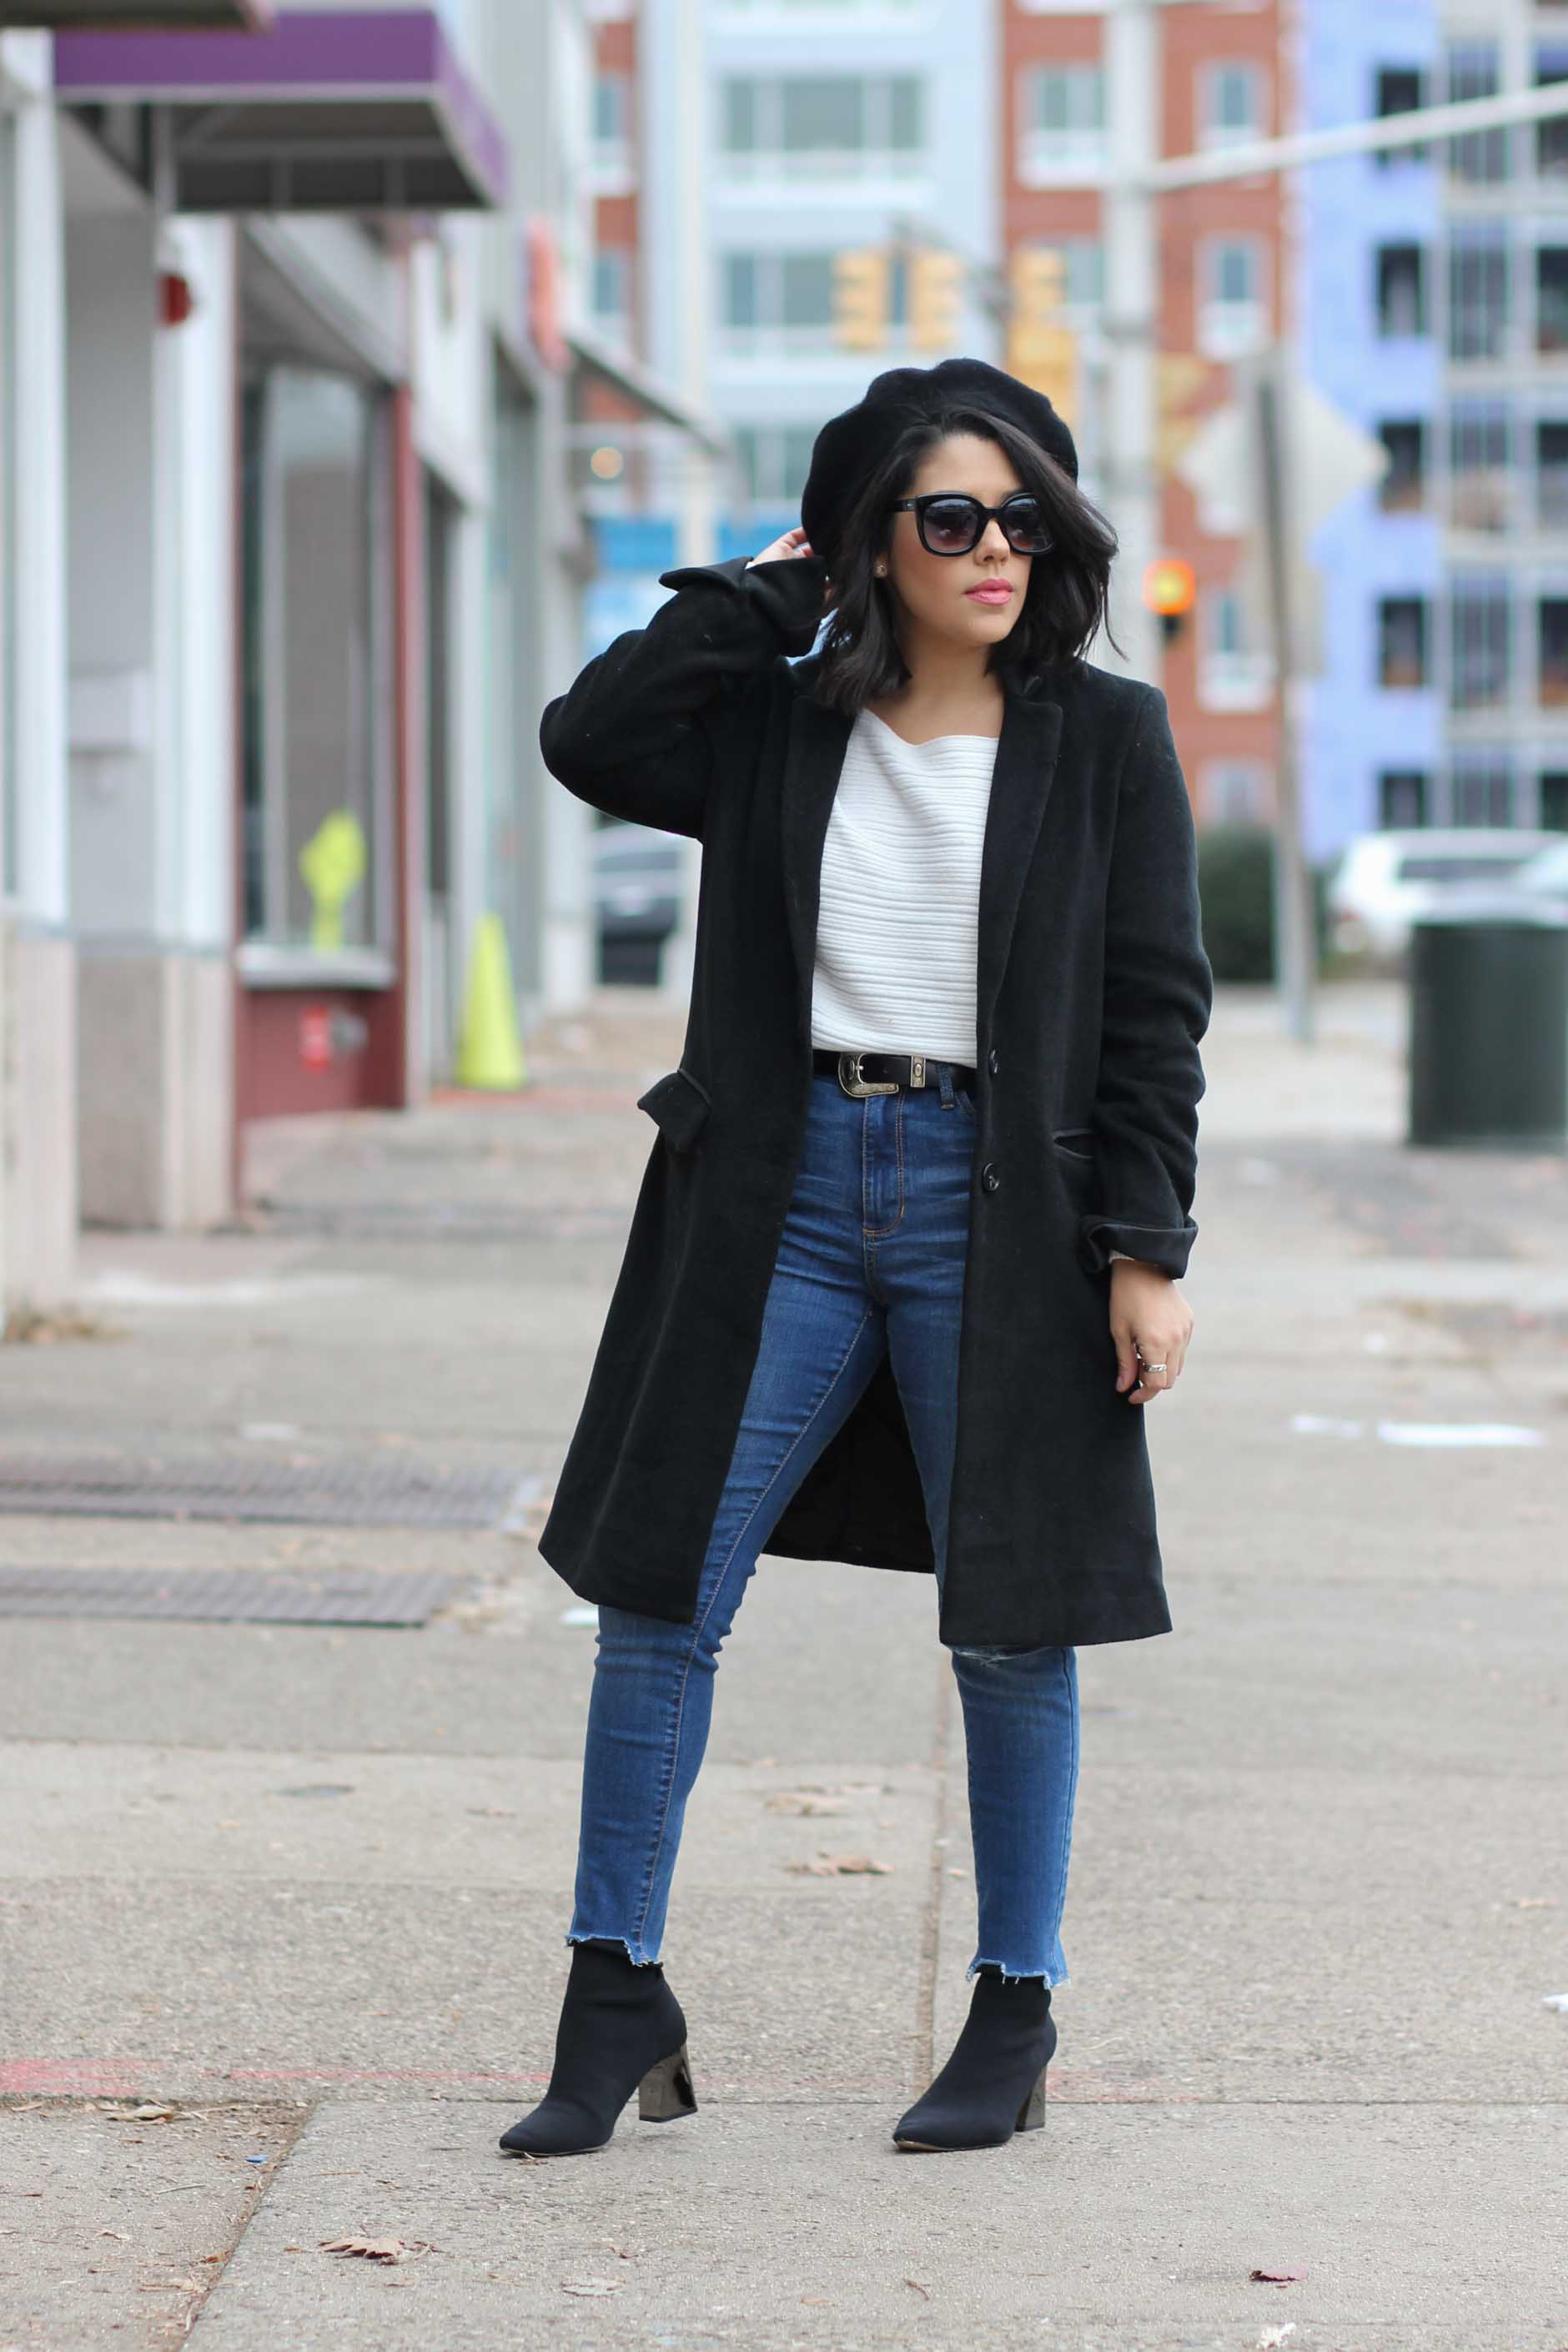 lifestyle blogger naty michele wearing denim with a beret and black coat